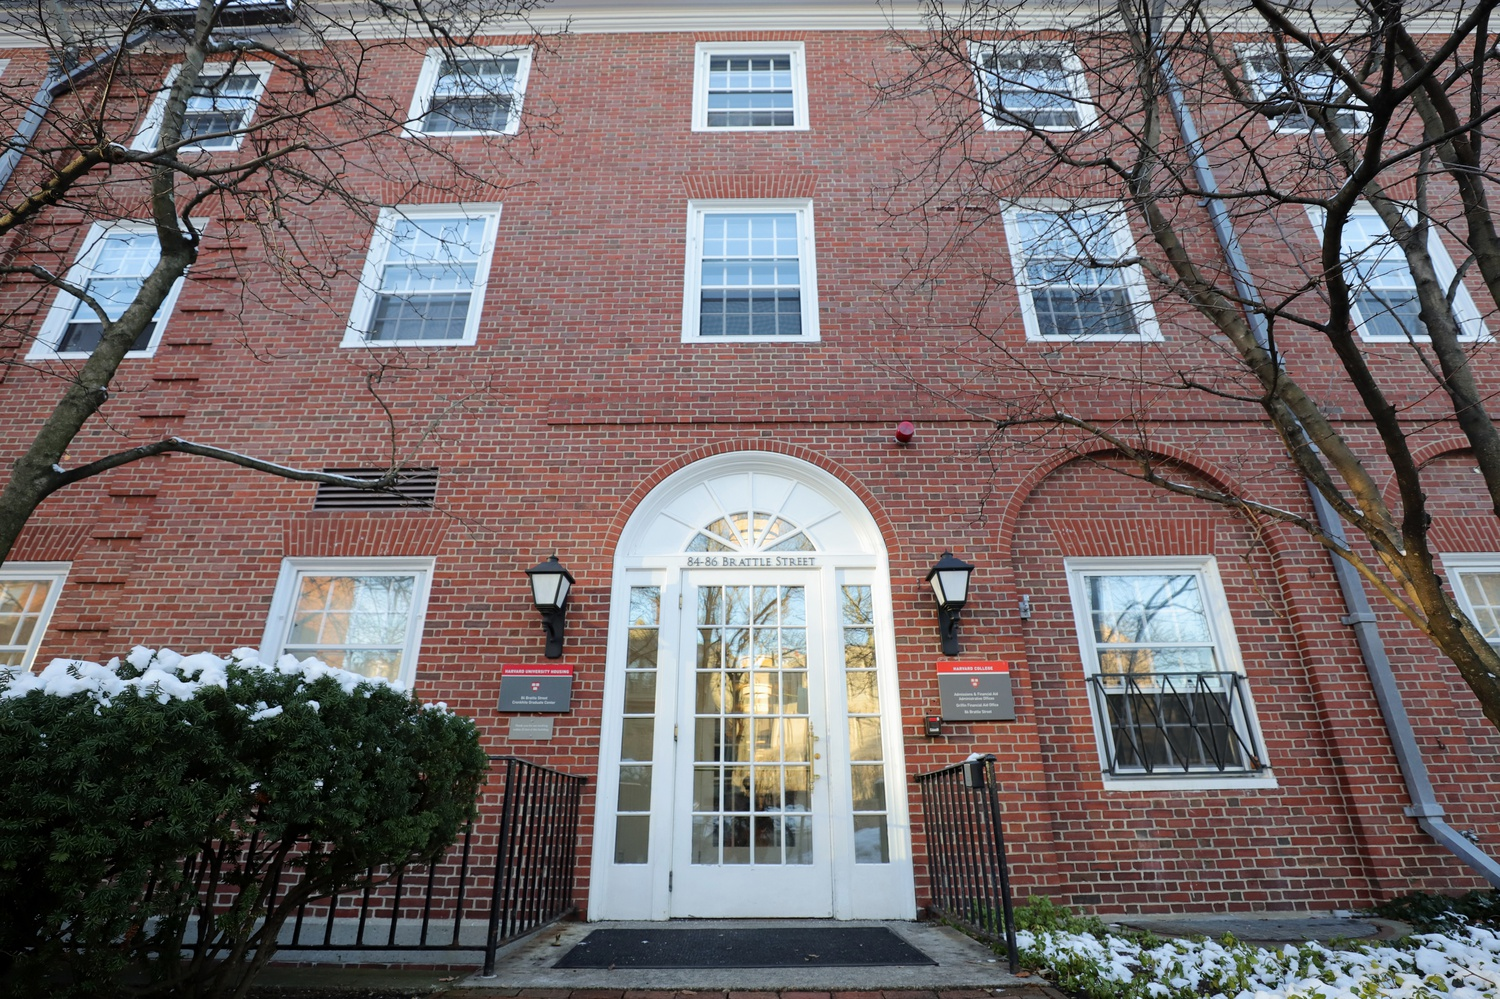 The Harvard College Office of Admissions and Financial Aid is located in Radliffe Yard.